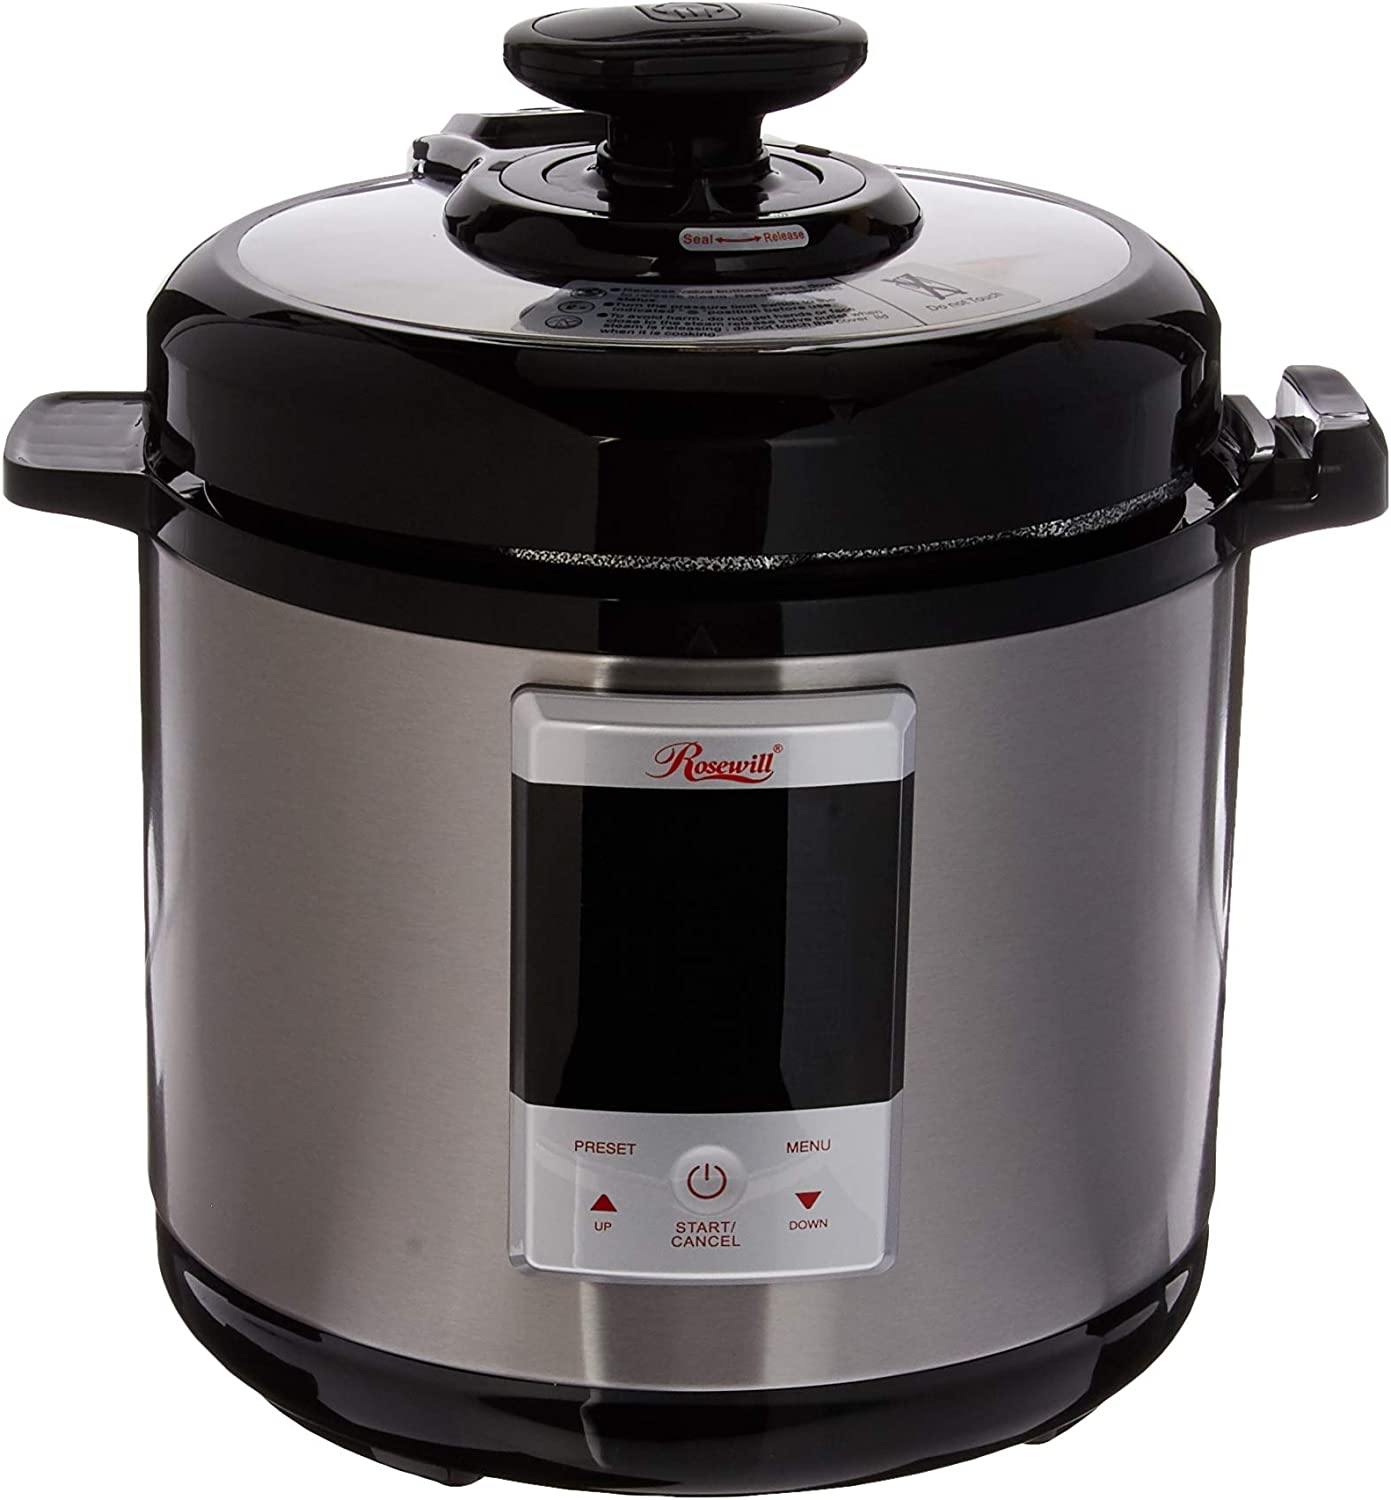 Rosewill Programmable Pressure Instapot Multi Cooker